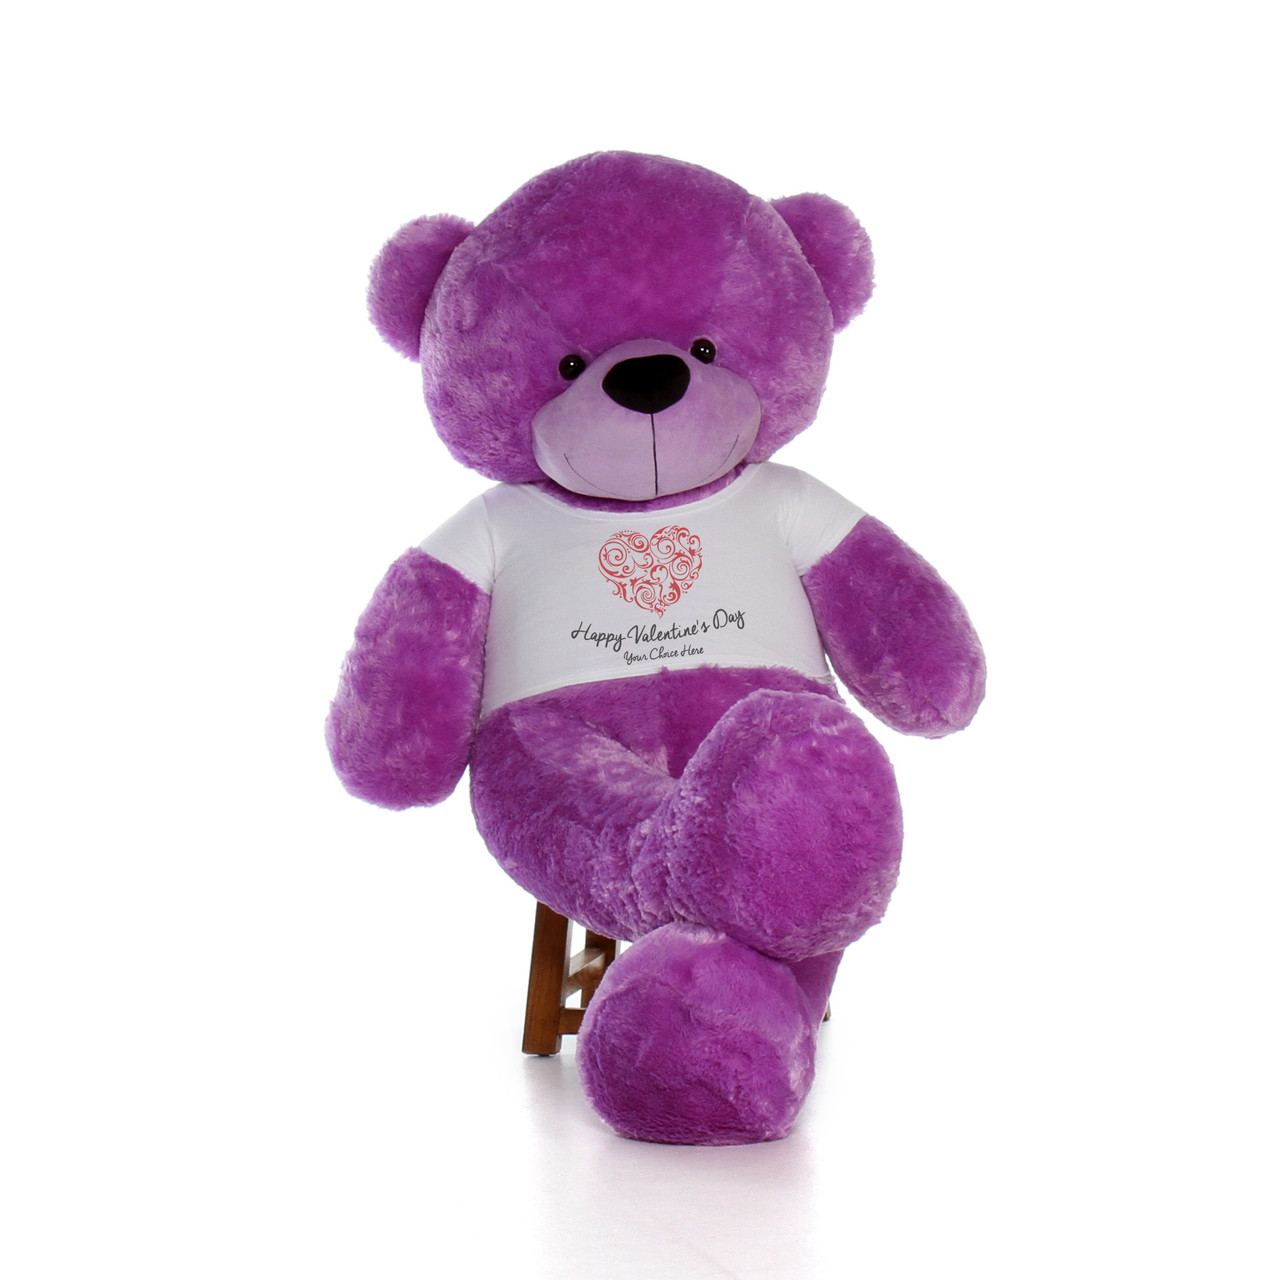 Super Soft Adorable Purple Giant Teddy Bear with Valentine's Day T-shirt